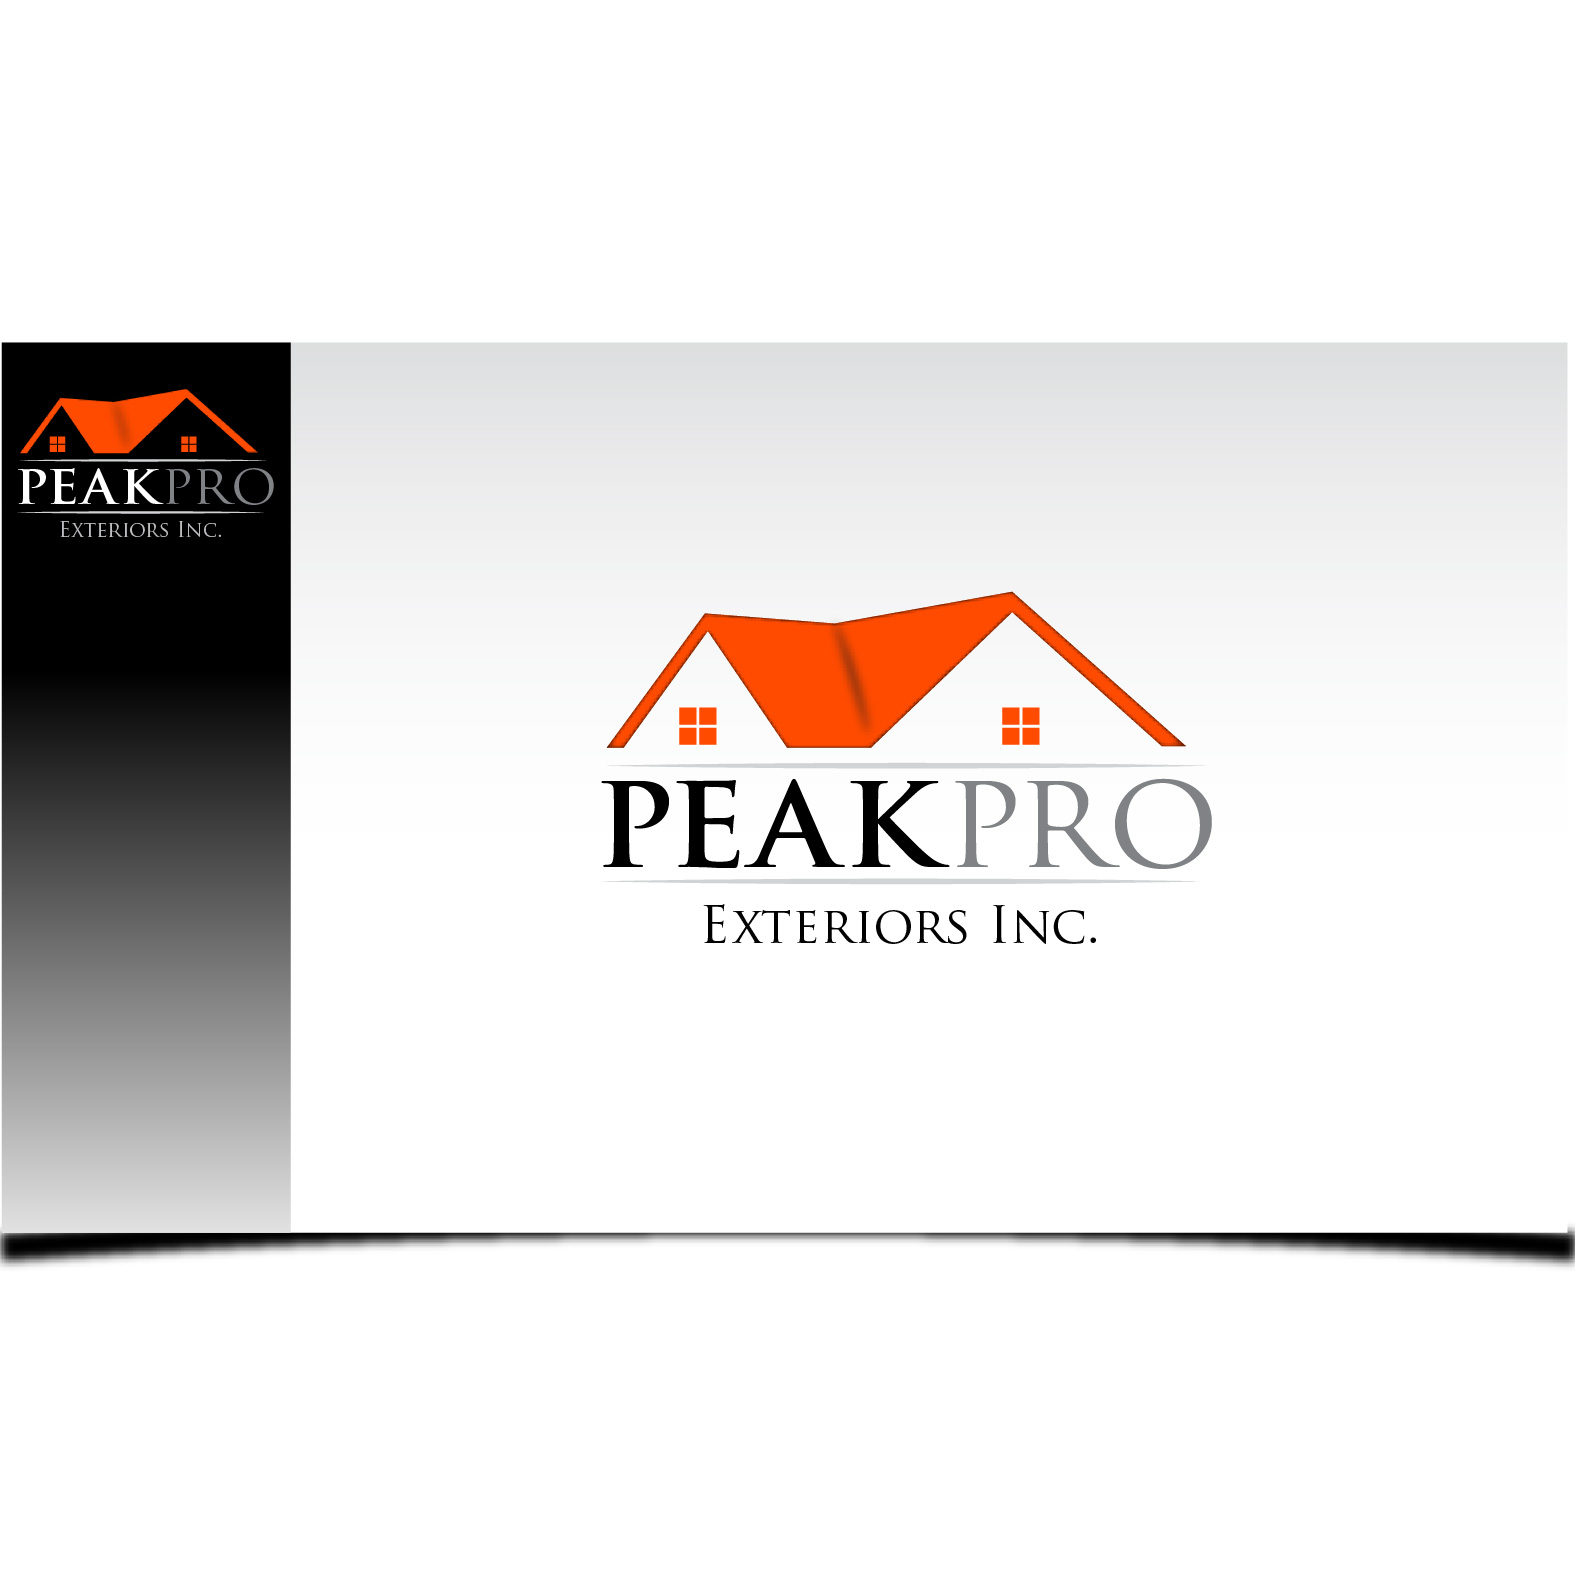 Logo Design by Robert Engi - Entry No. 23 in the Logo Design Contest Captivating Logo Design for Peakpro Exteriors Inc..